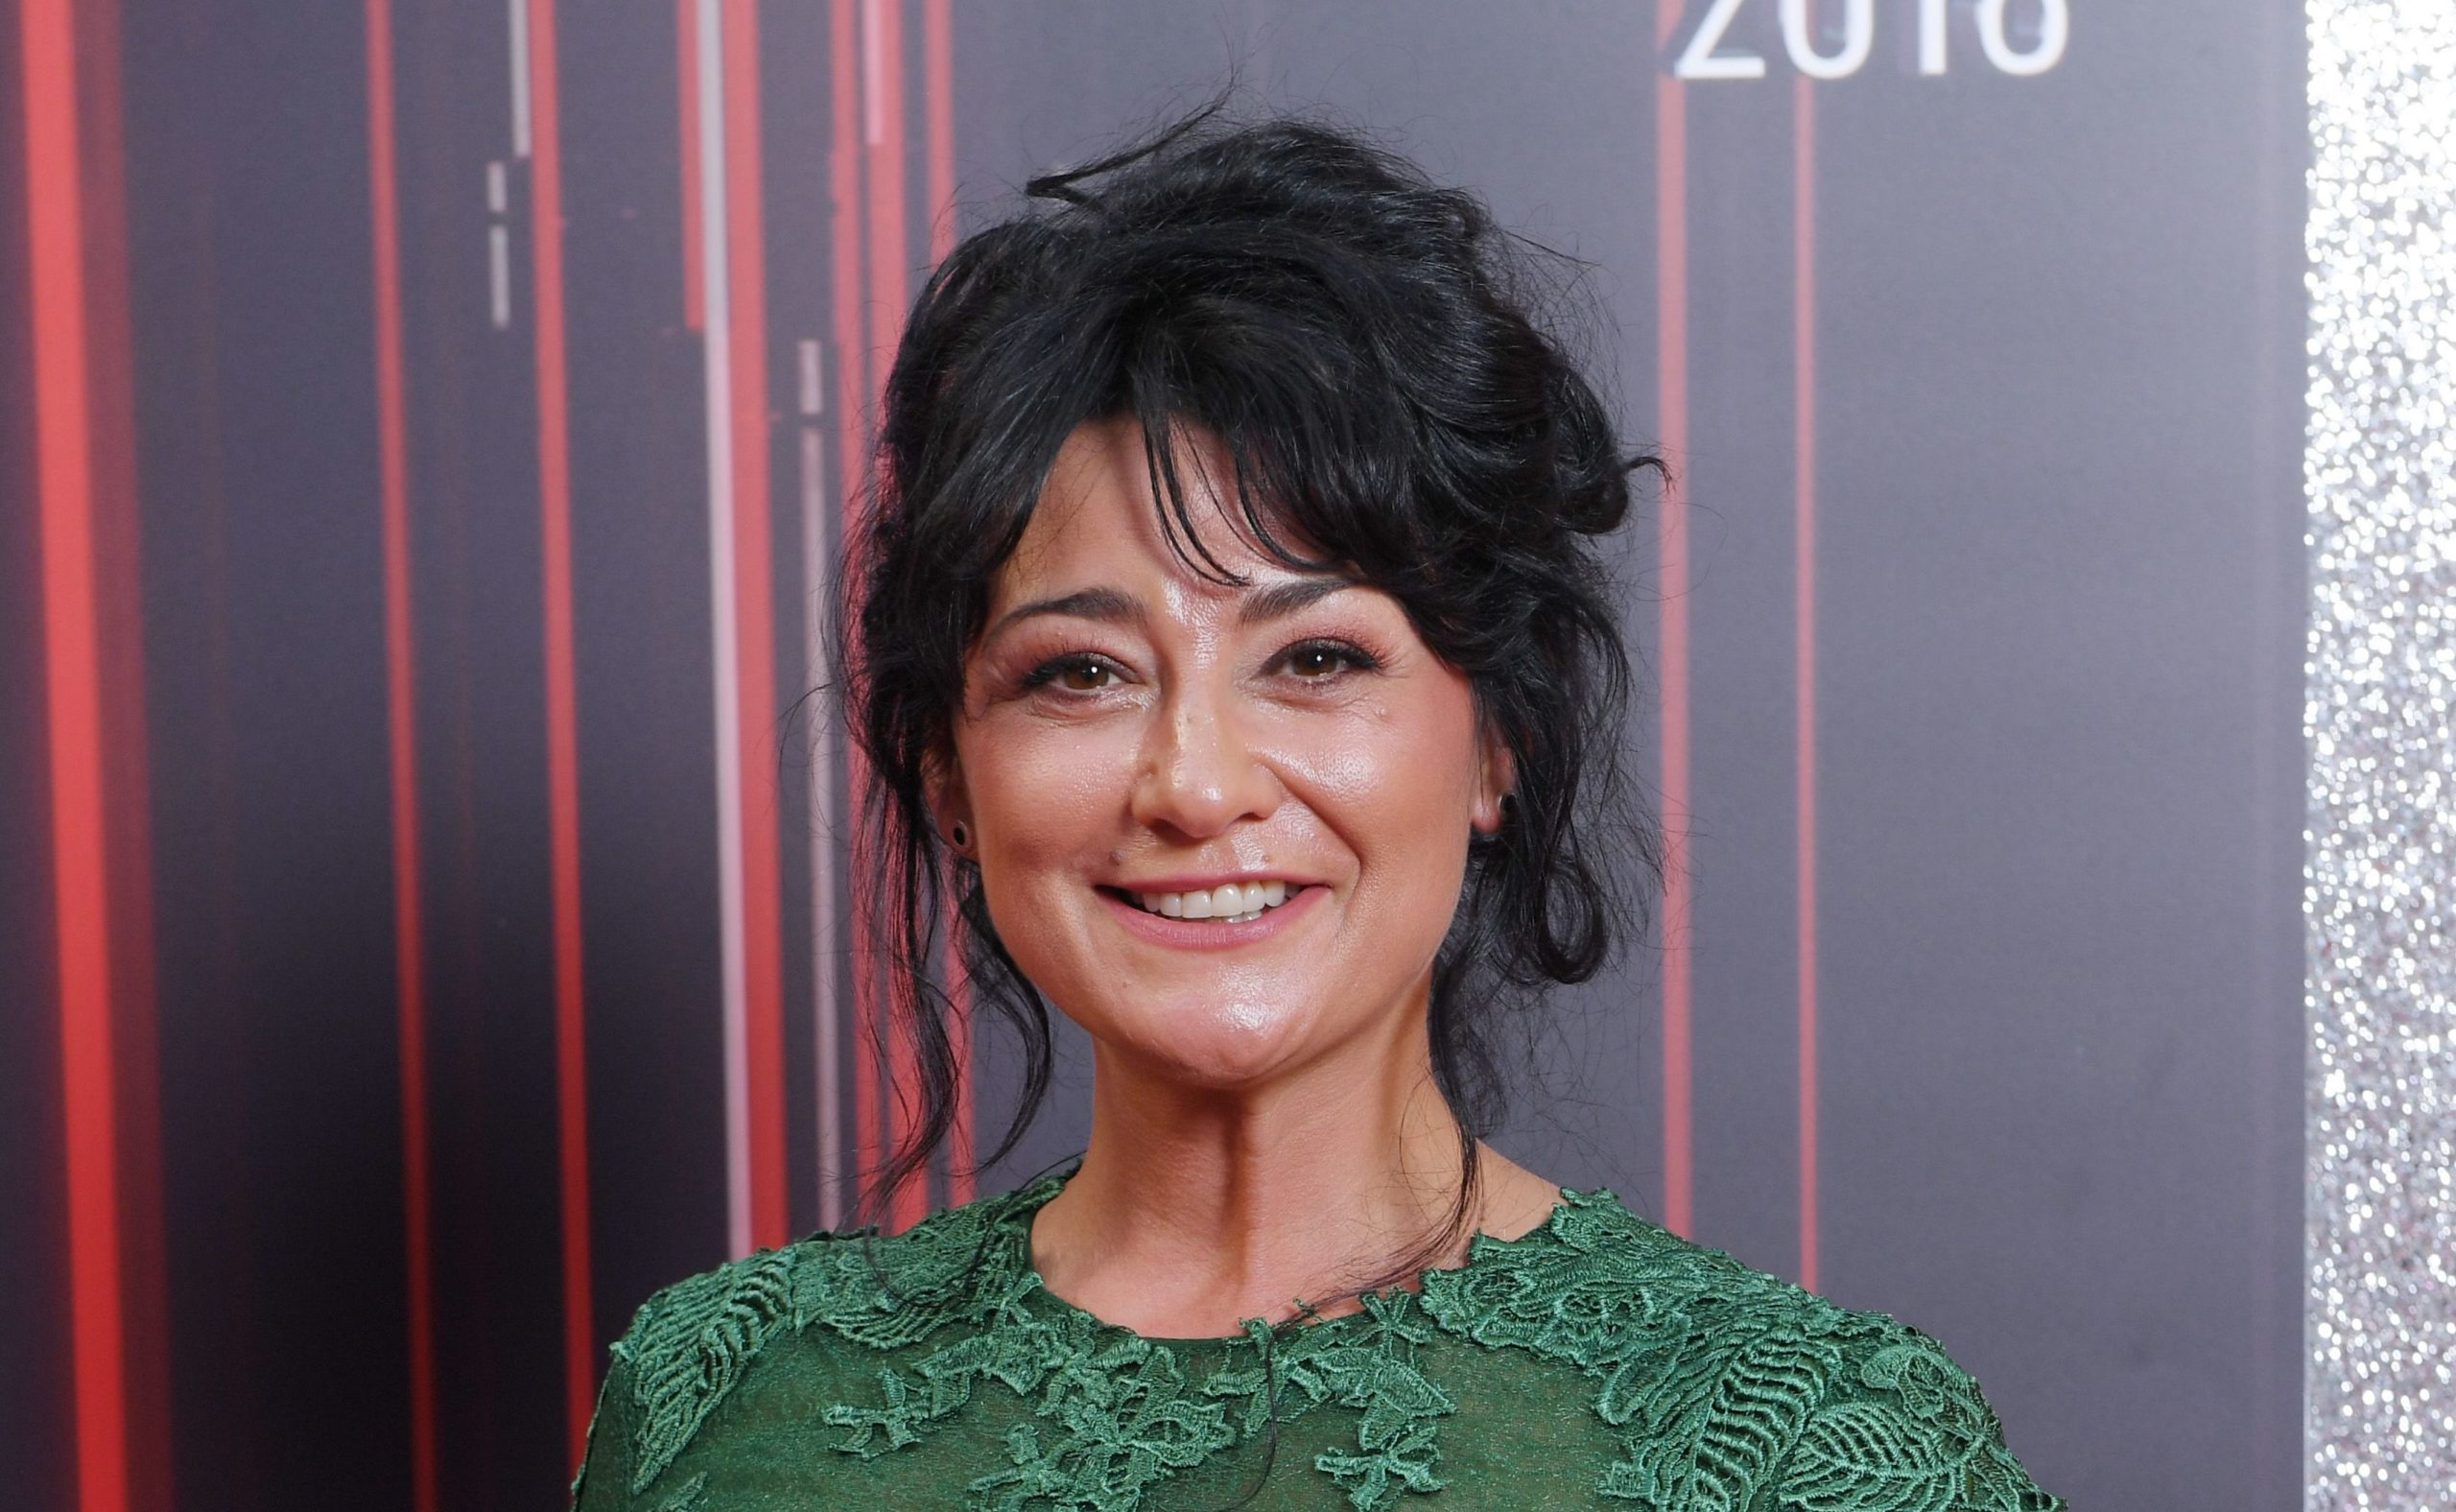 Emmerdale actress Natalie J Robb sparks rumours of love affair with co-star Jonny McPherson